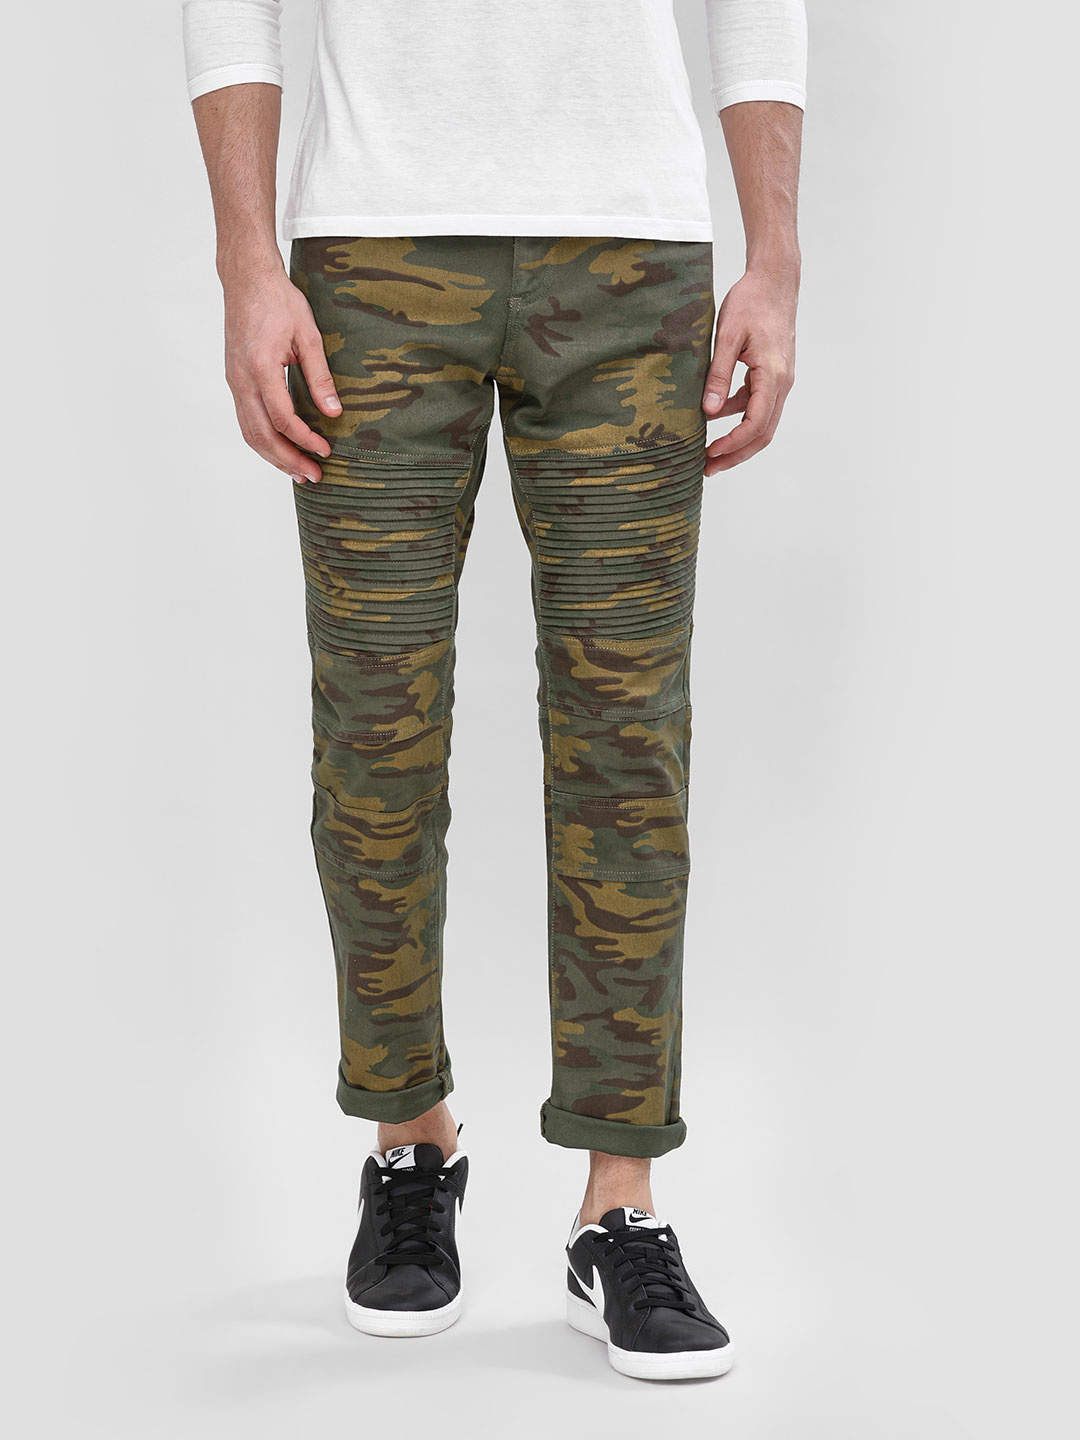 Blue Saint Olive Camo Biker Panel Slim Jeans 1